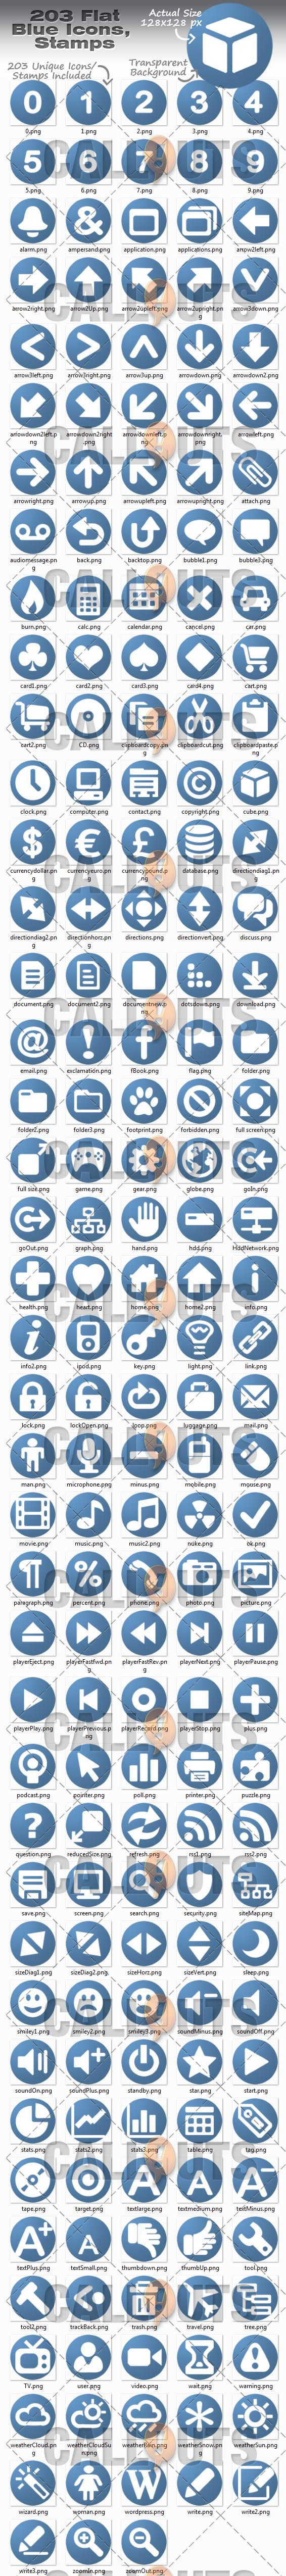 Flag Blue Icons Overview